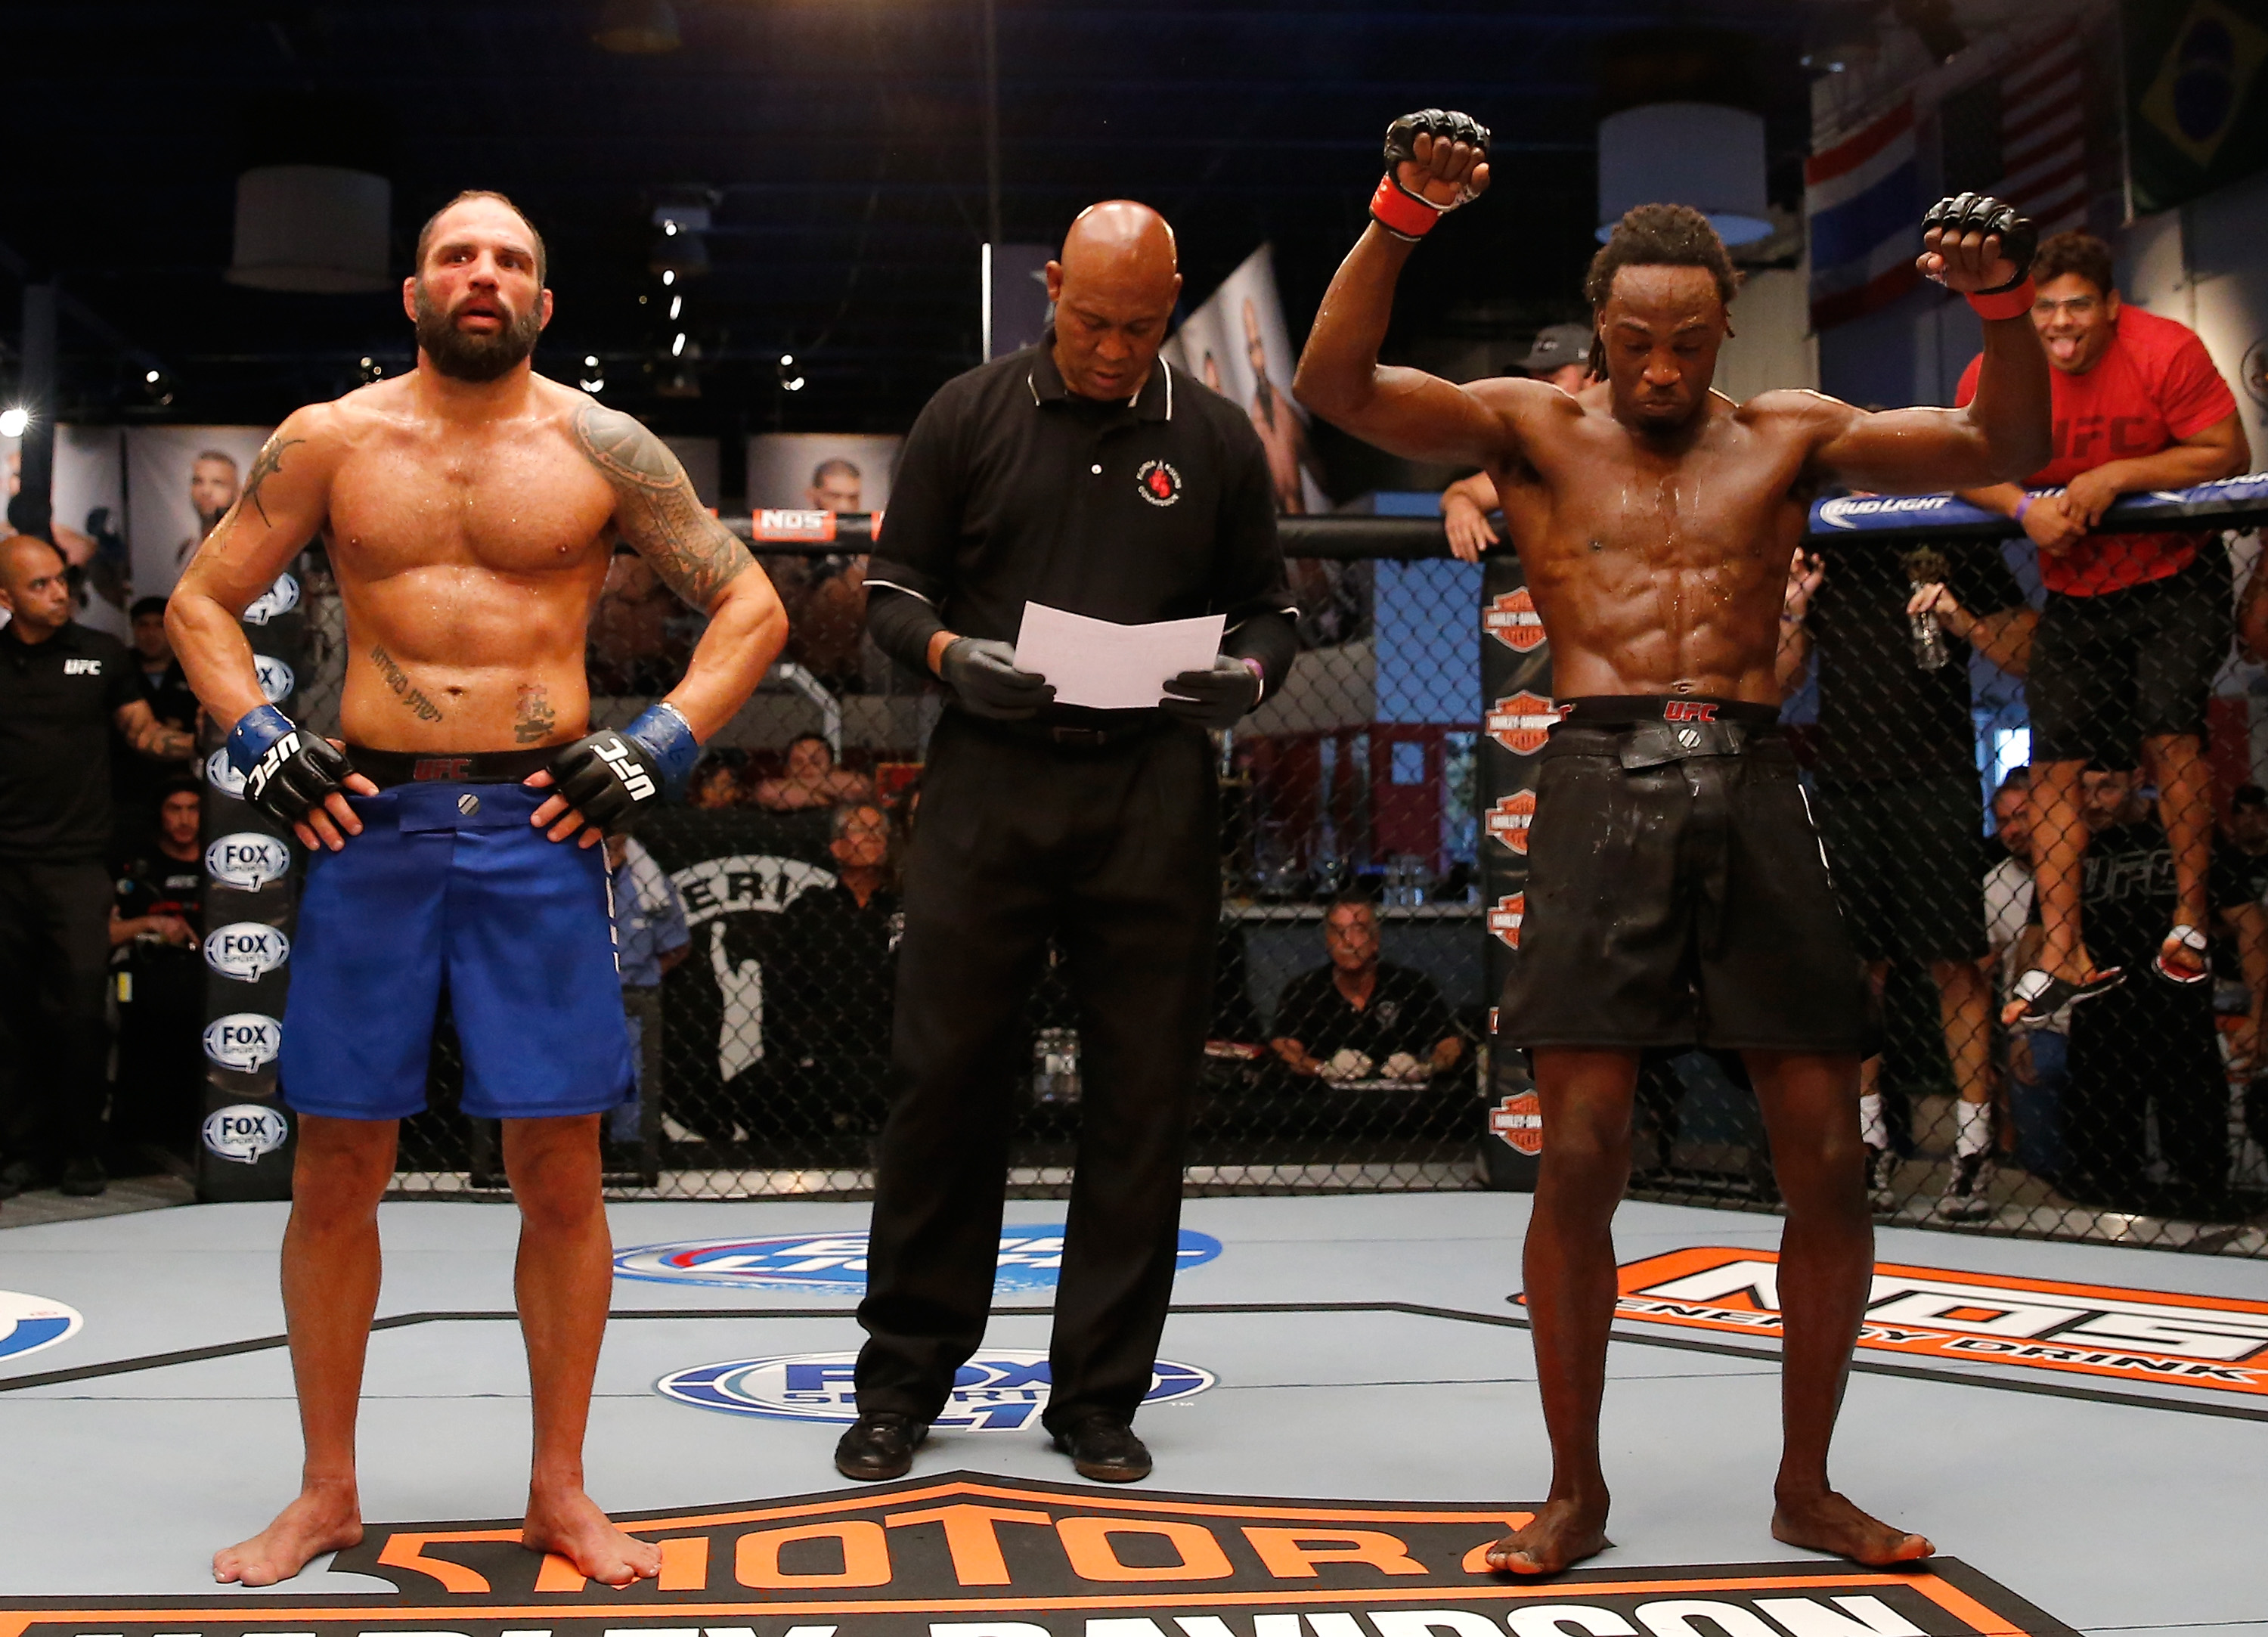 COCONUT CREEK, FL - FEBRUARY 13:  (R-L) Jason Jackson celebrates his victory over Marcelo Alfaya during the filming of The Ultimate Fighter: American Top Team vs Blackzilians on February 13, 2015 in Coconut Creek, Florida. (Photo by Chris Trotman/Zuffa LLC/Zuffa LLC via Getty Images)